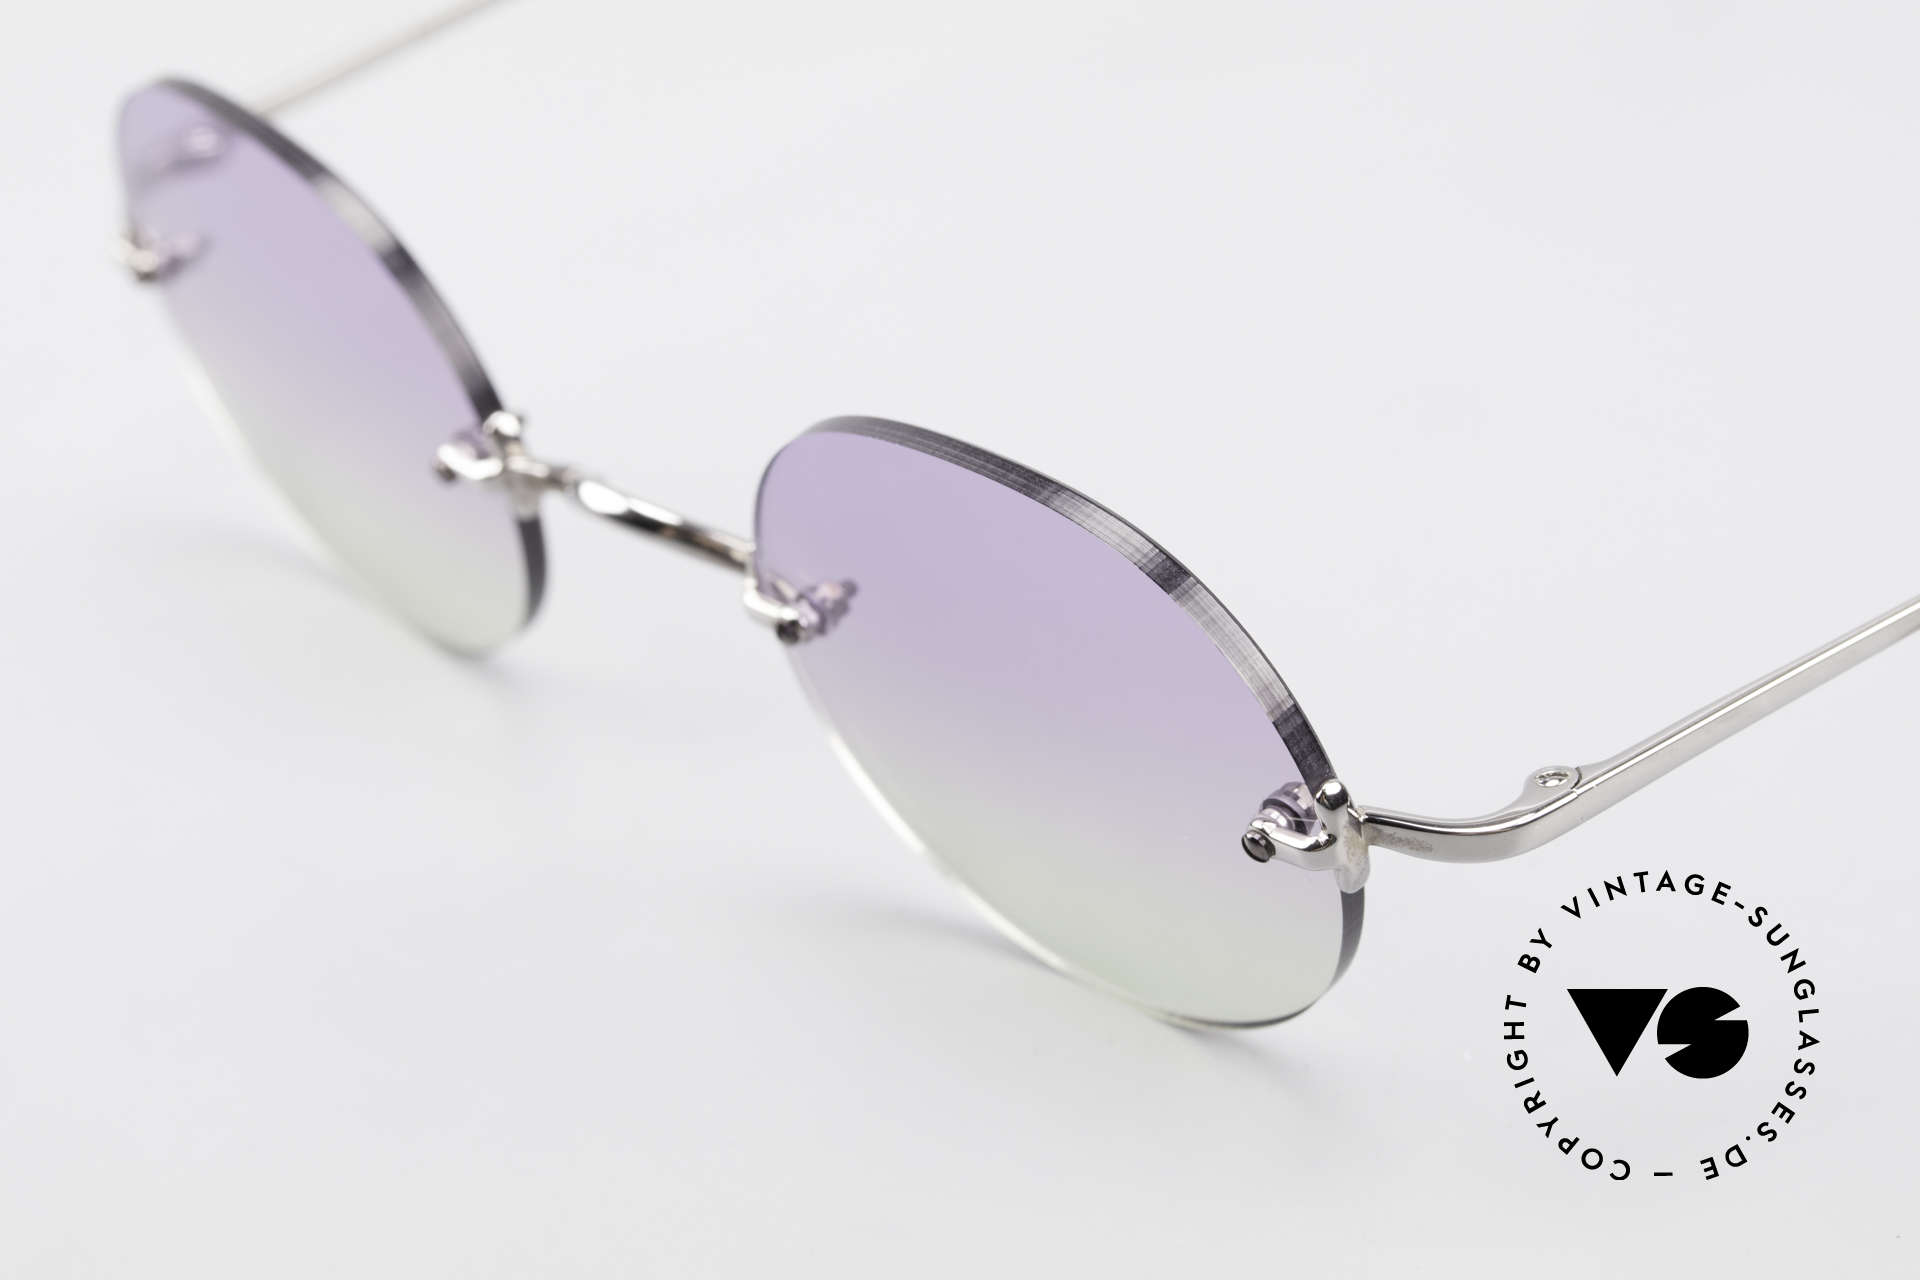 Freudenhaus Flemming Round Rimless Sunglasses, bicolored gradient sun lenses (from purple to green), Made for Men and Women